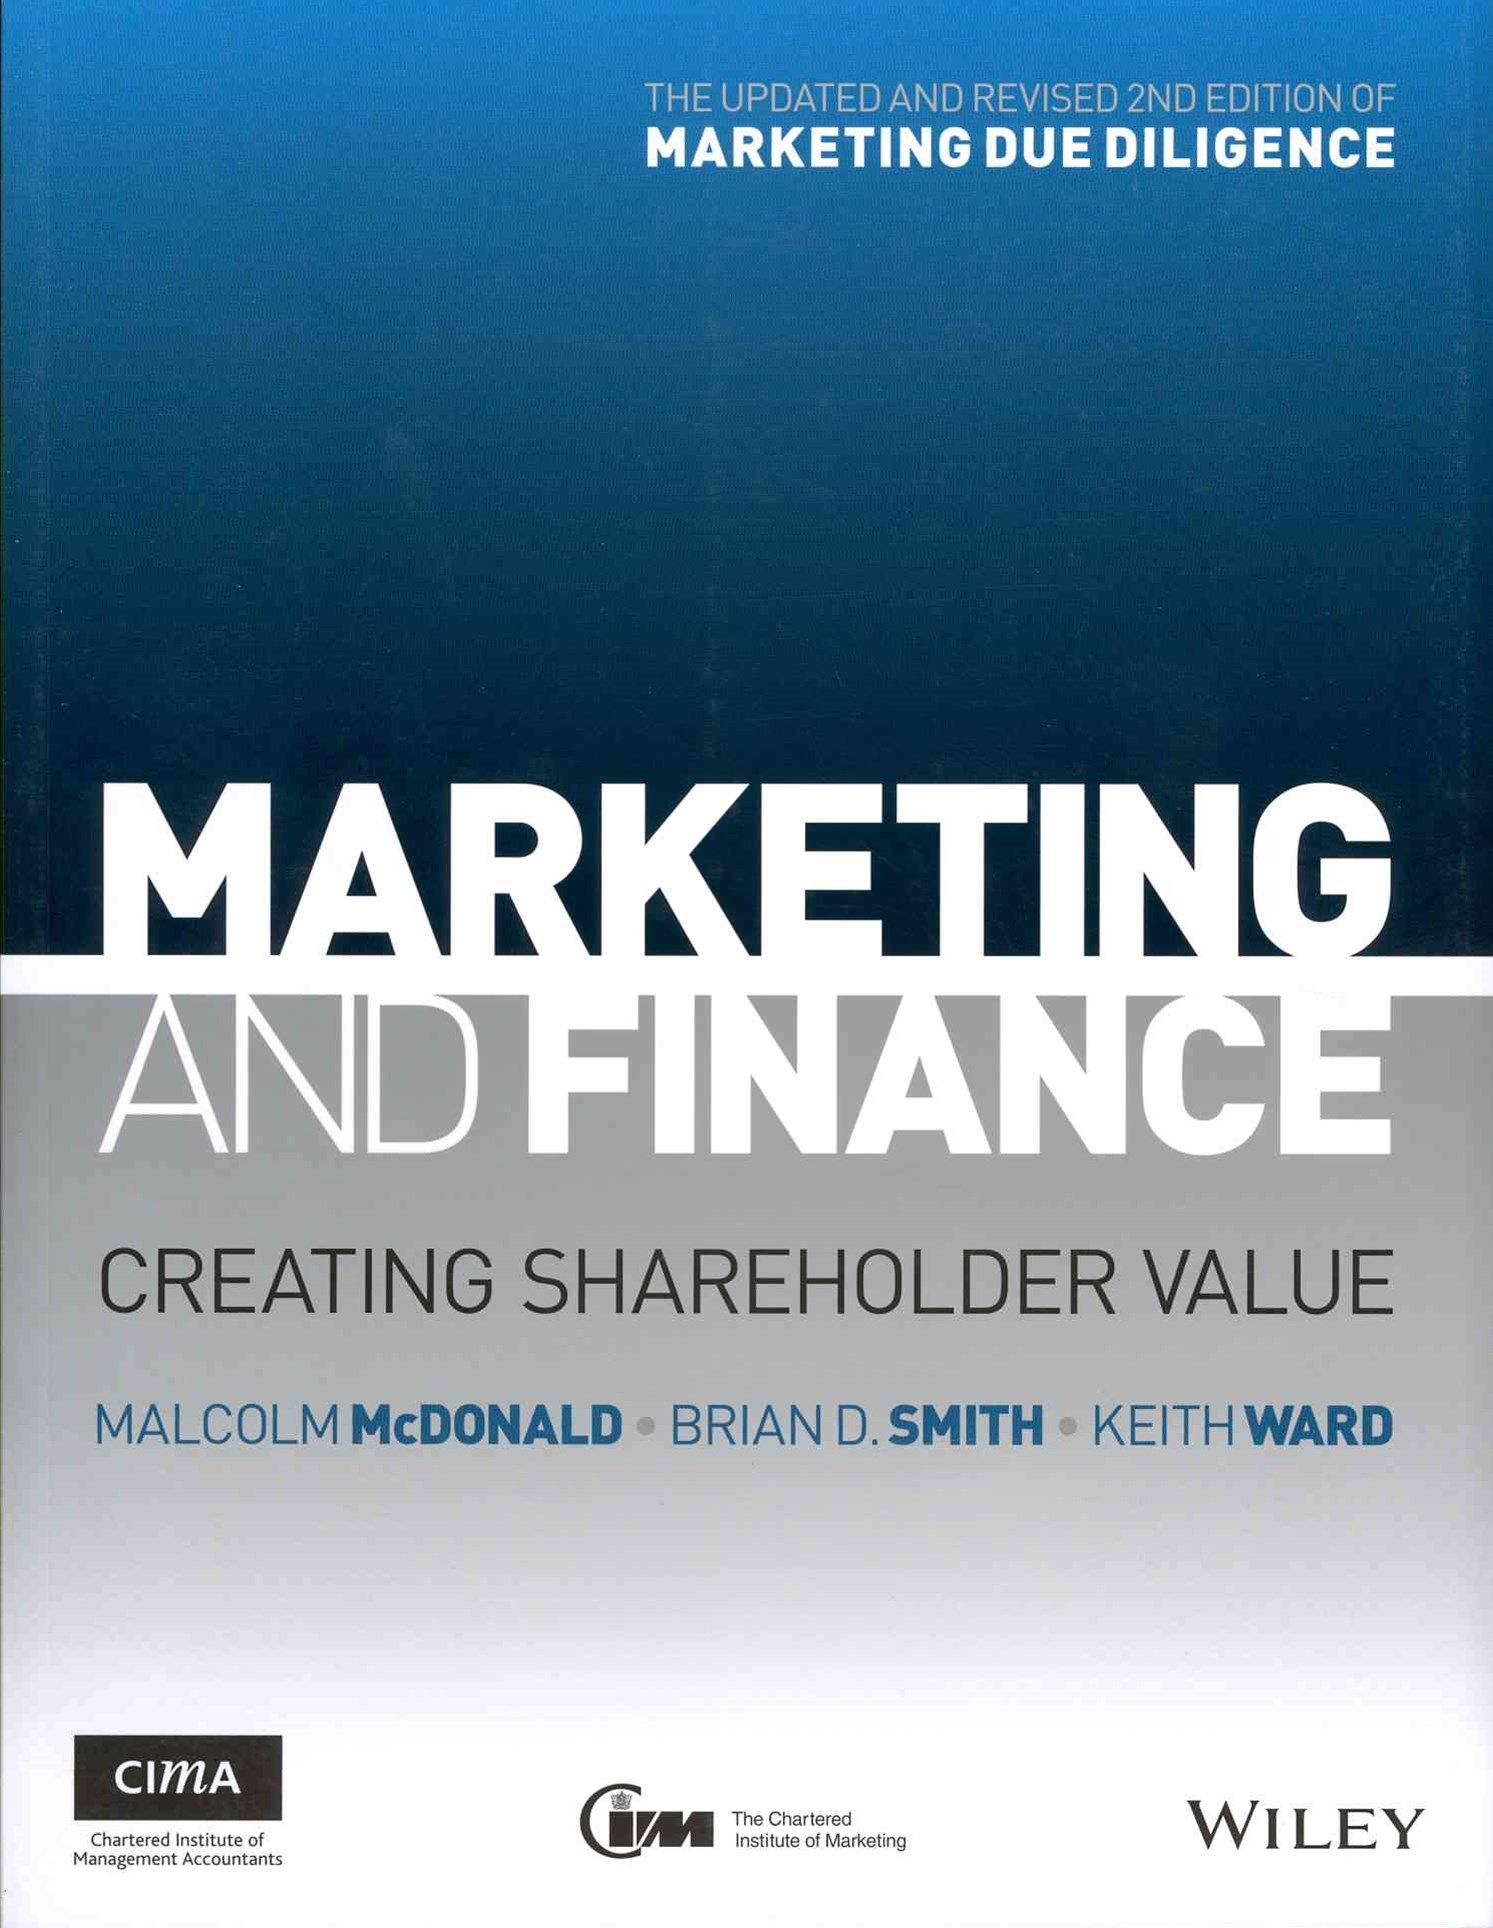 Marketing and Finance - Creating Shareholder Value 2E